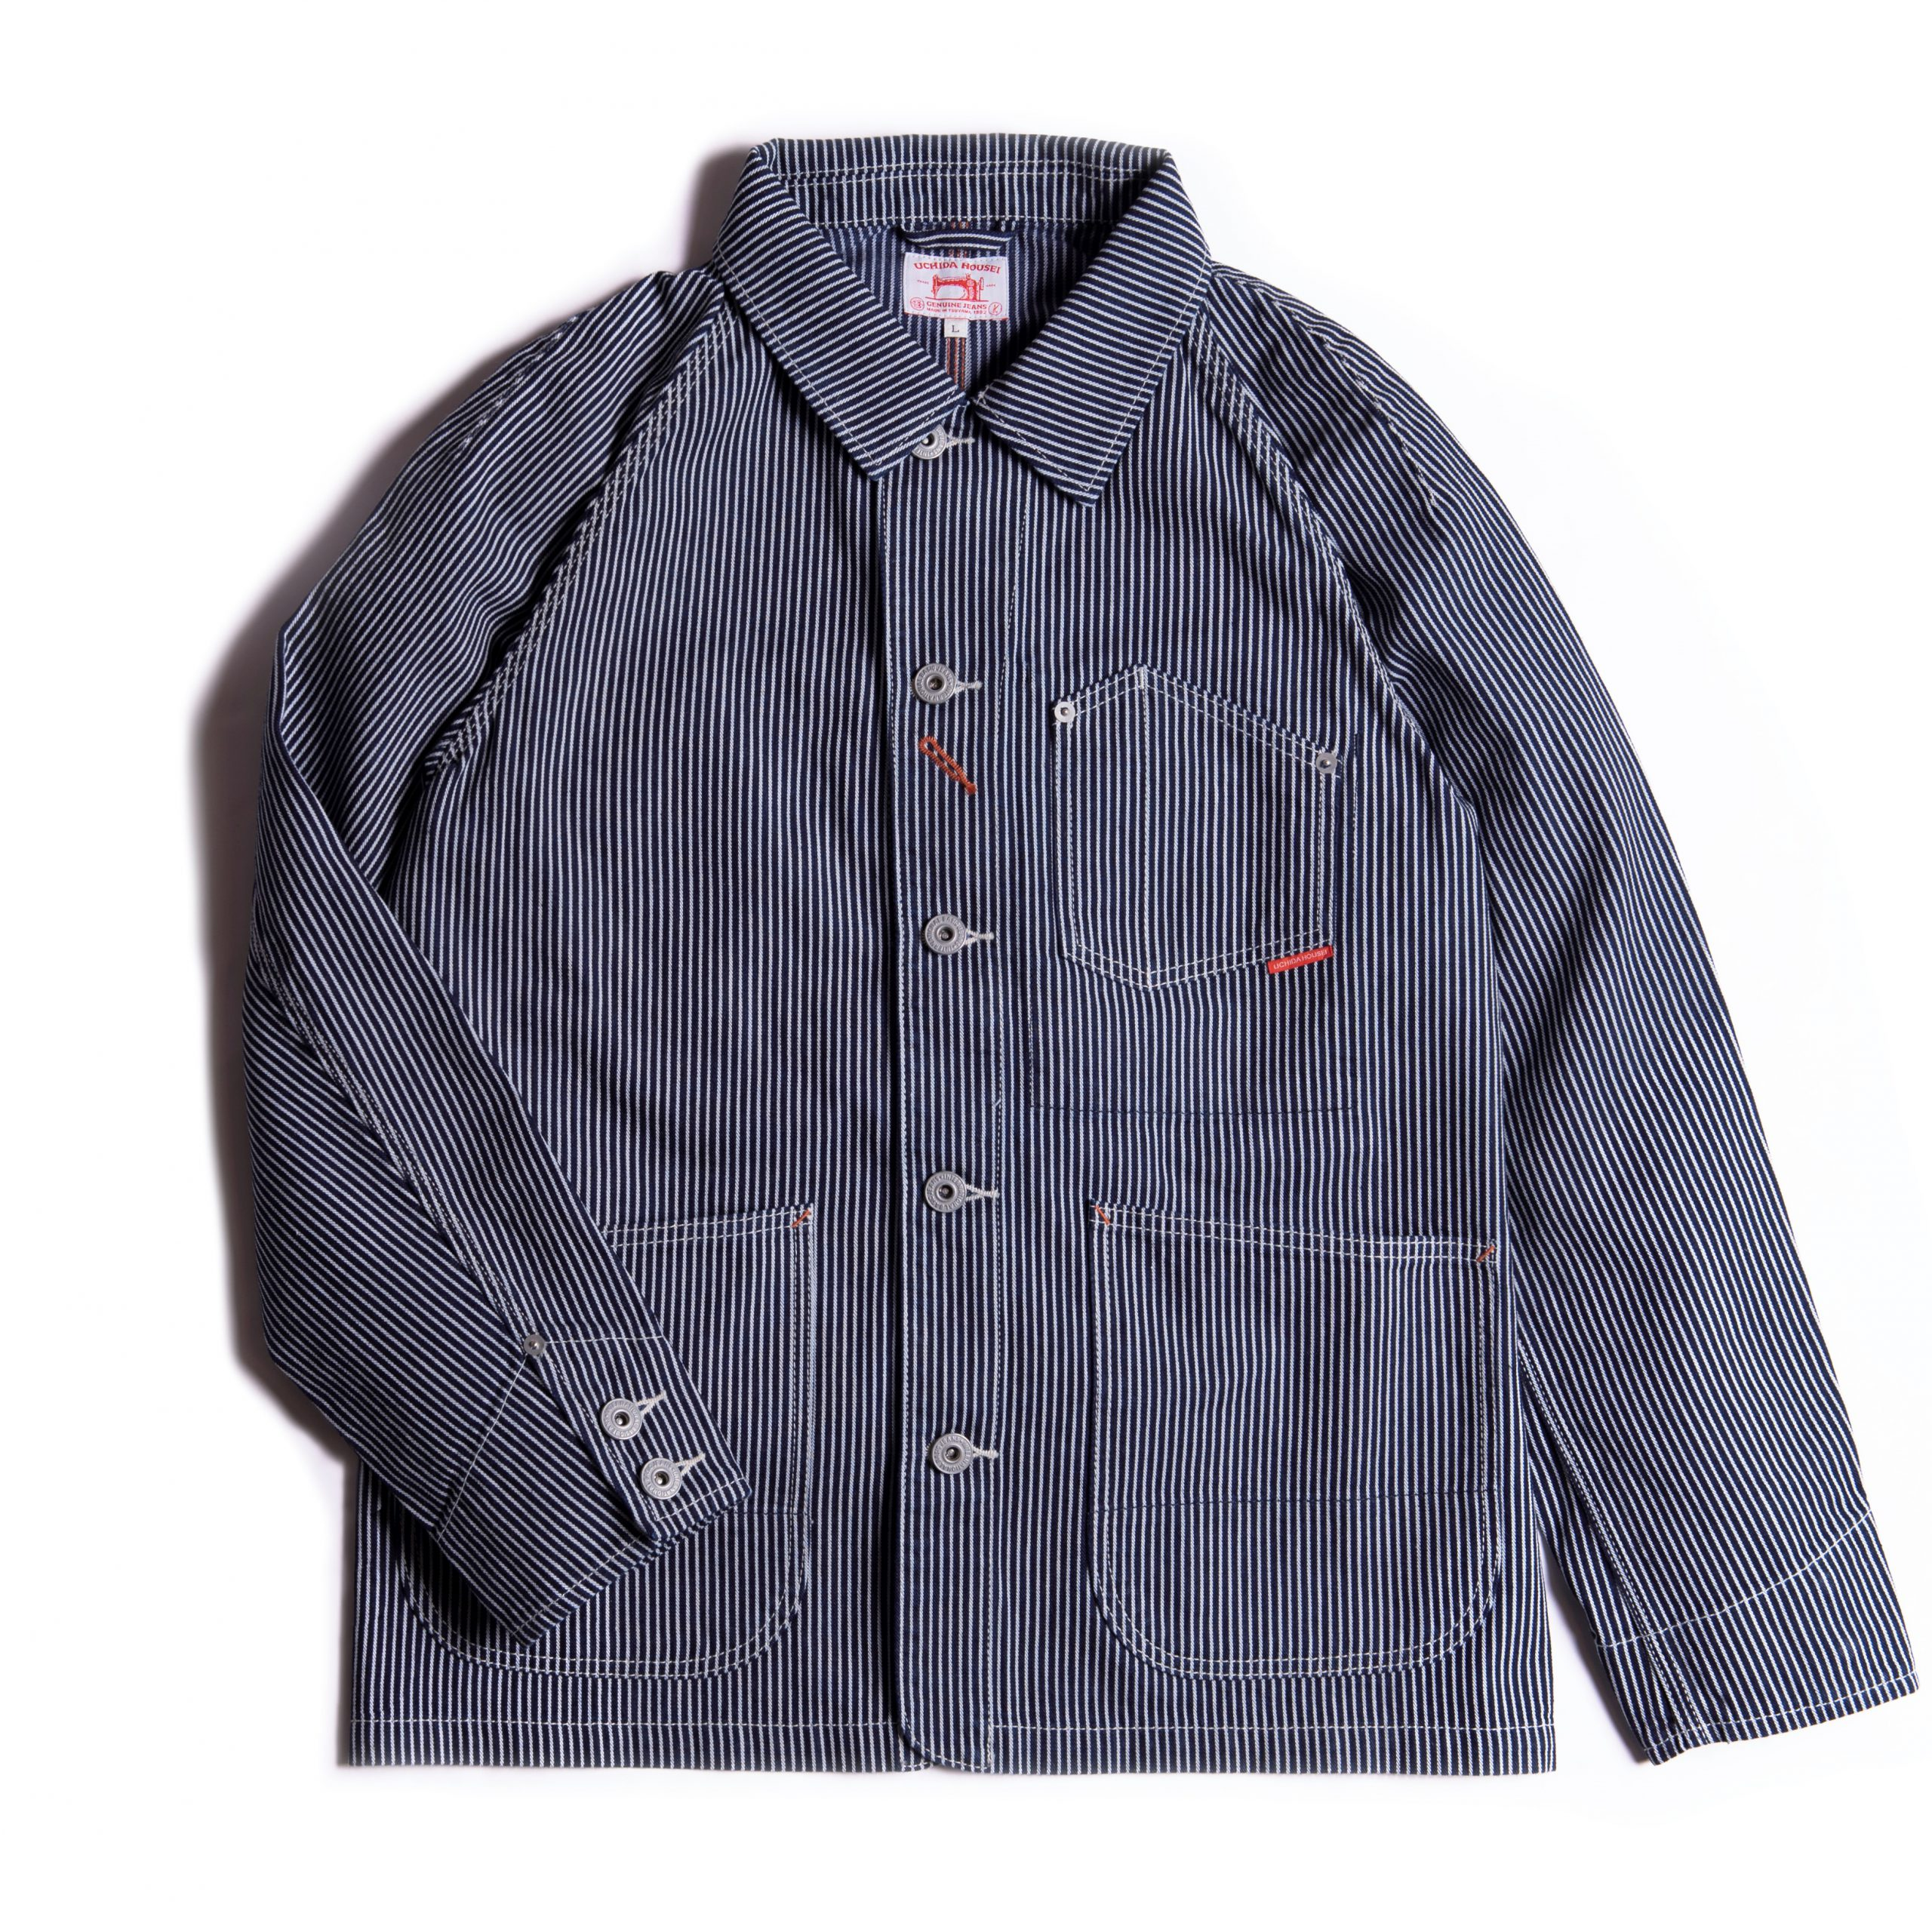 COVERALL HICKORY【カバーオール ヒッコリー】